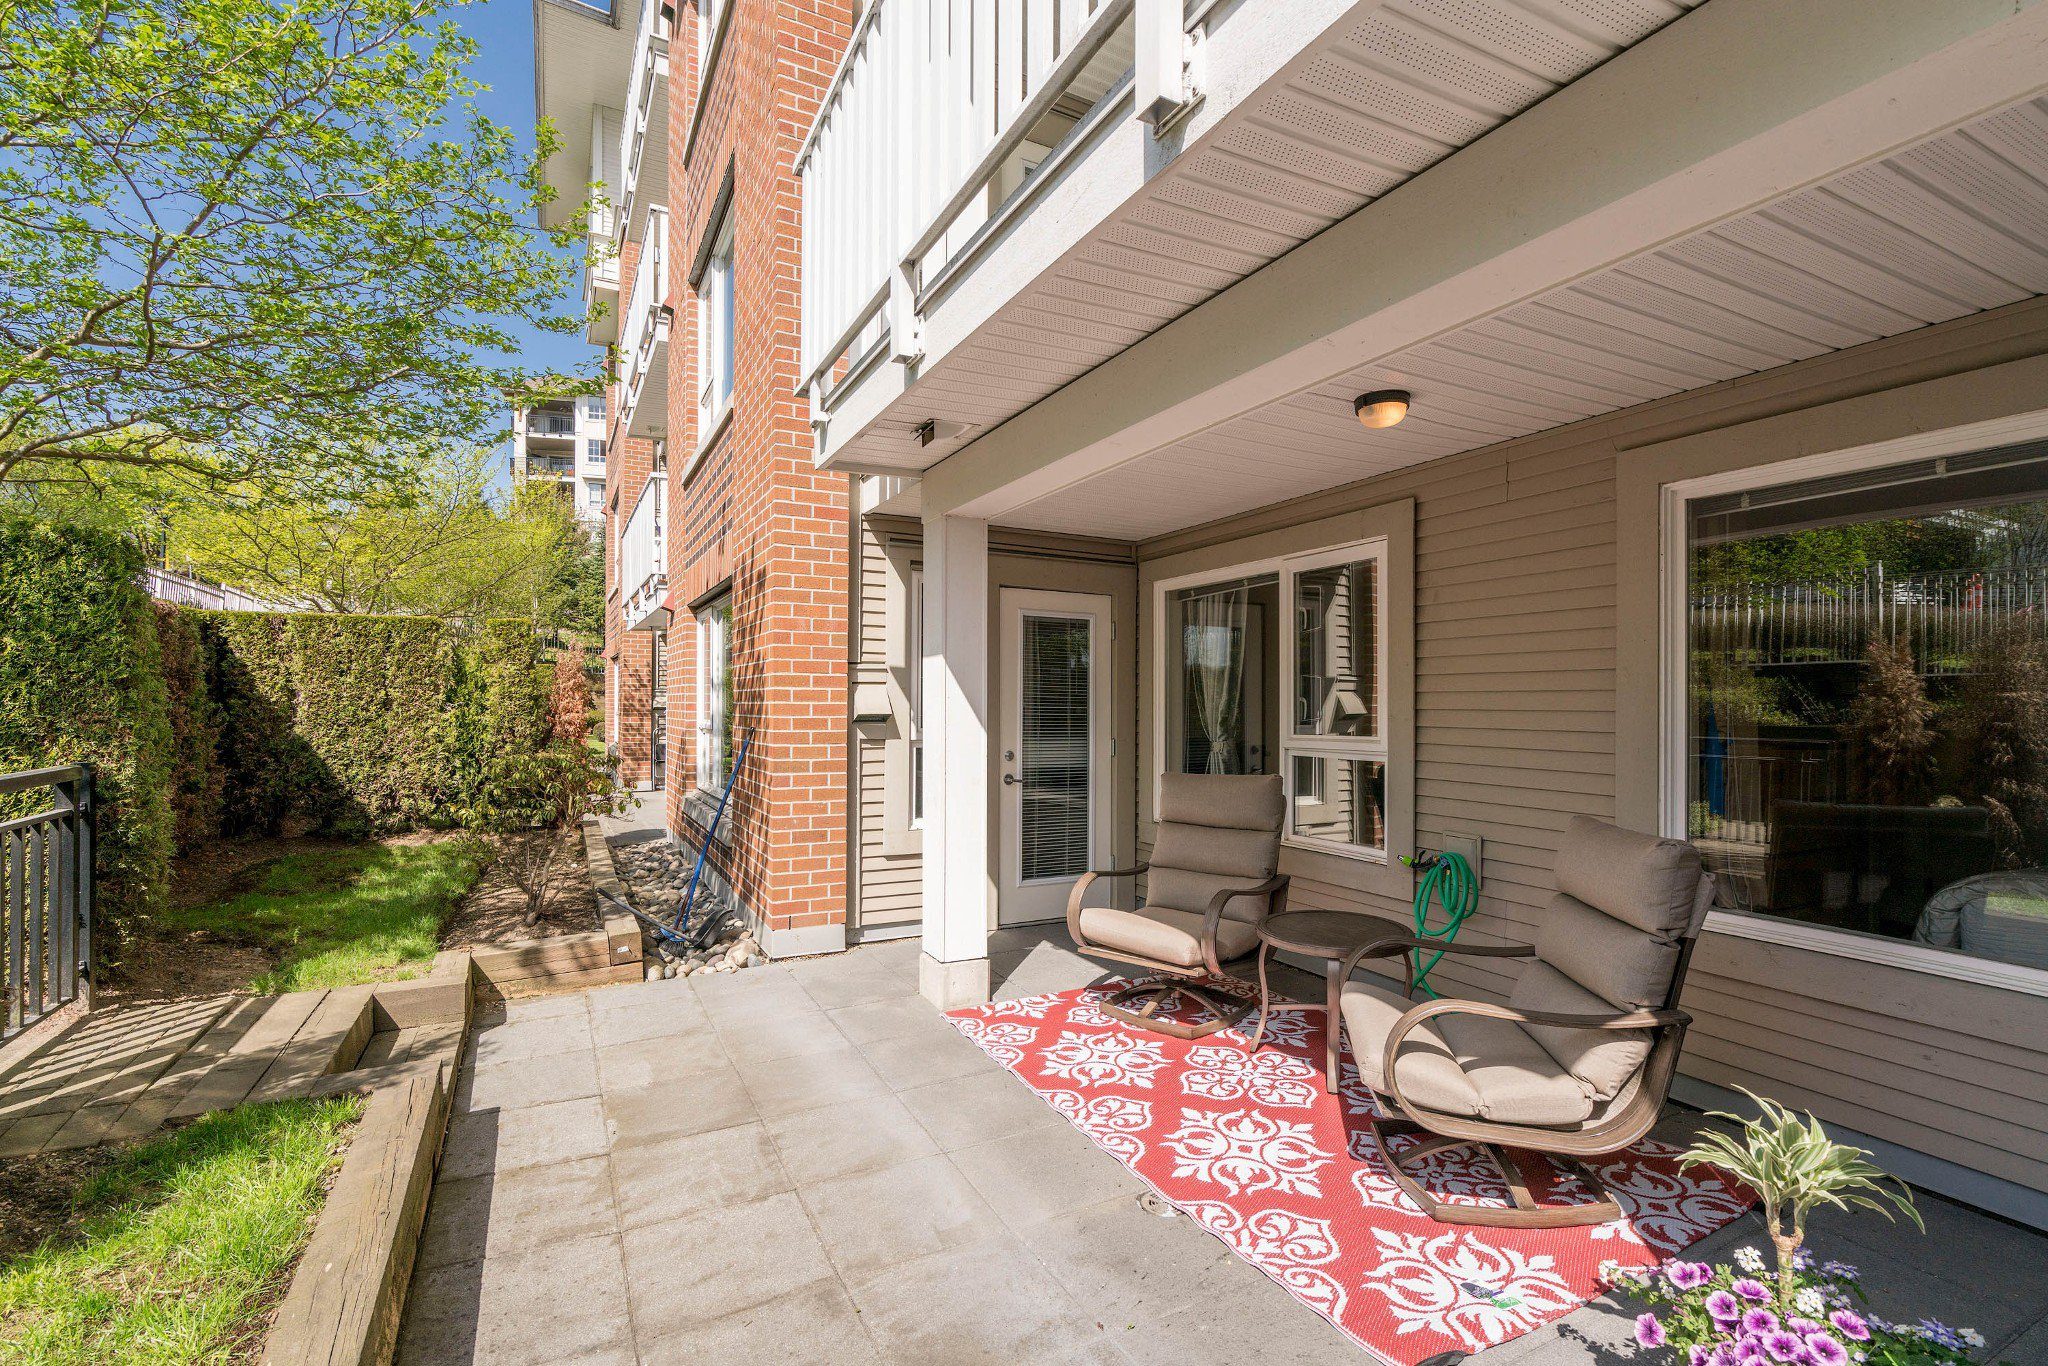 """Main Photo: 110 4723 DAWSON Street in Burnaby: Brentwood Park Condo for sale in """"Collage"""" (Burnaby North)  : MLS®# R2261958"""